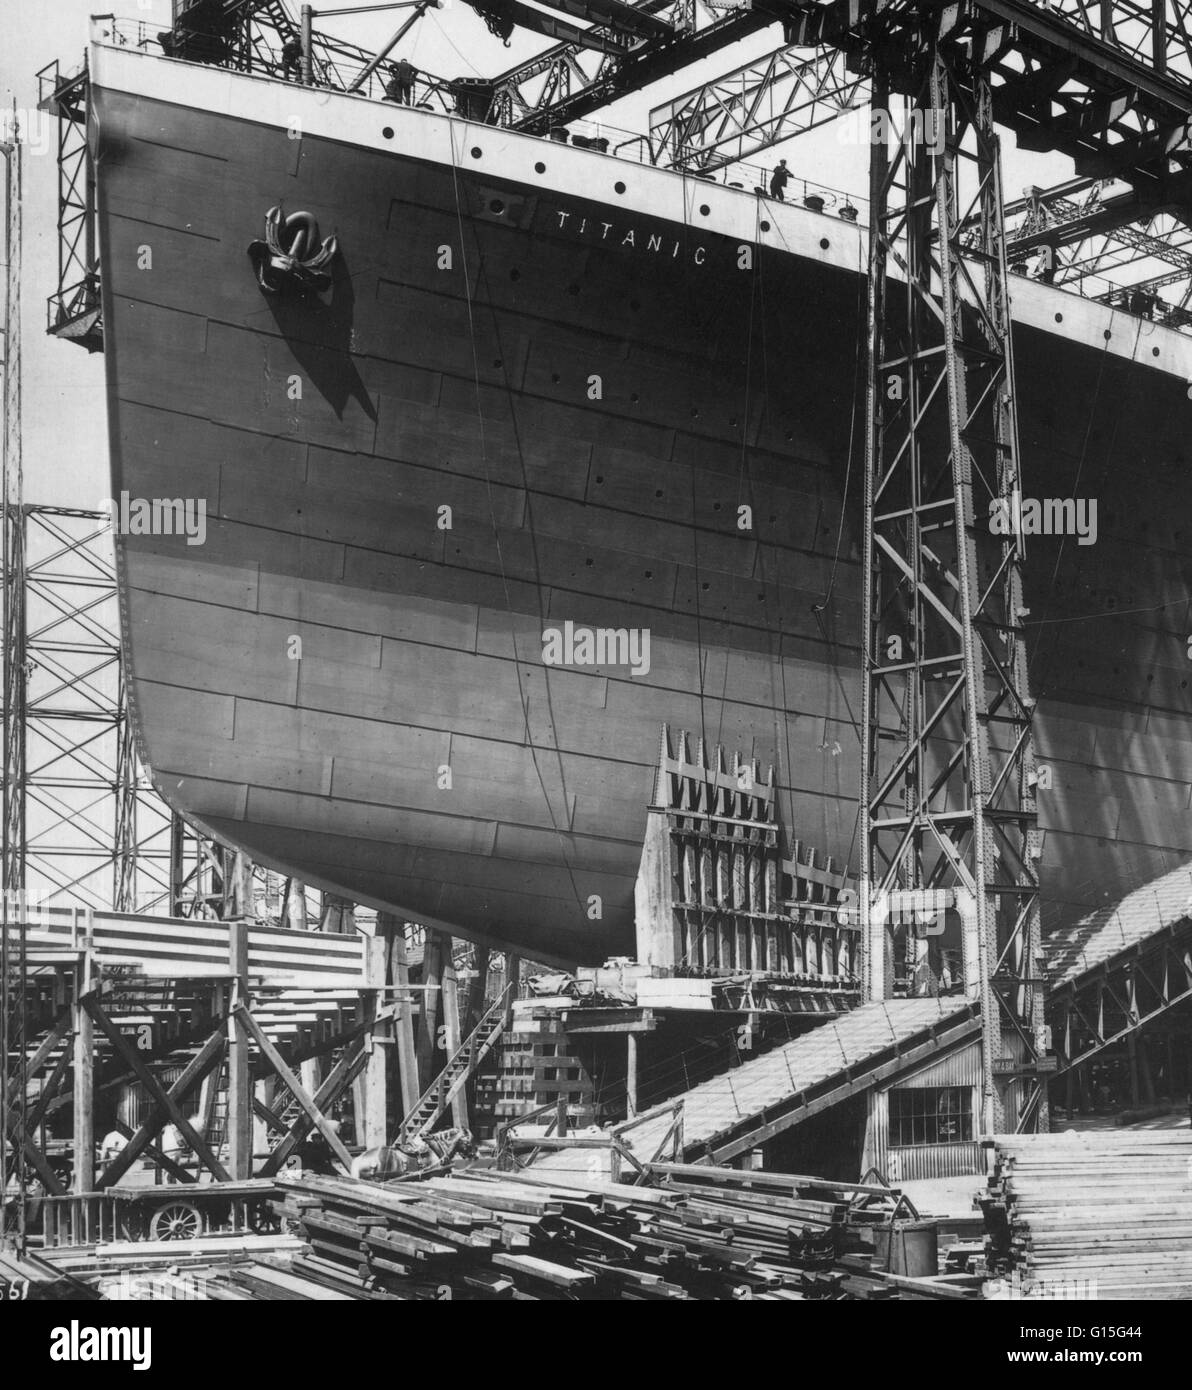 The famous Titanic steamship ready for launch from Belfast, 1911. - Stock Image